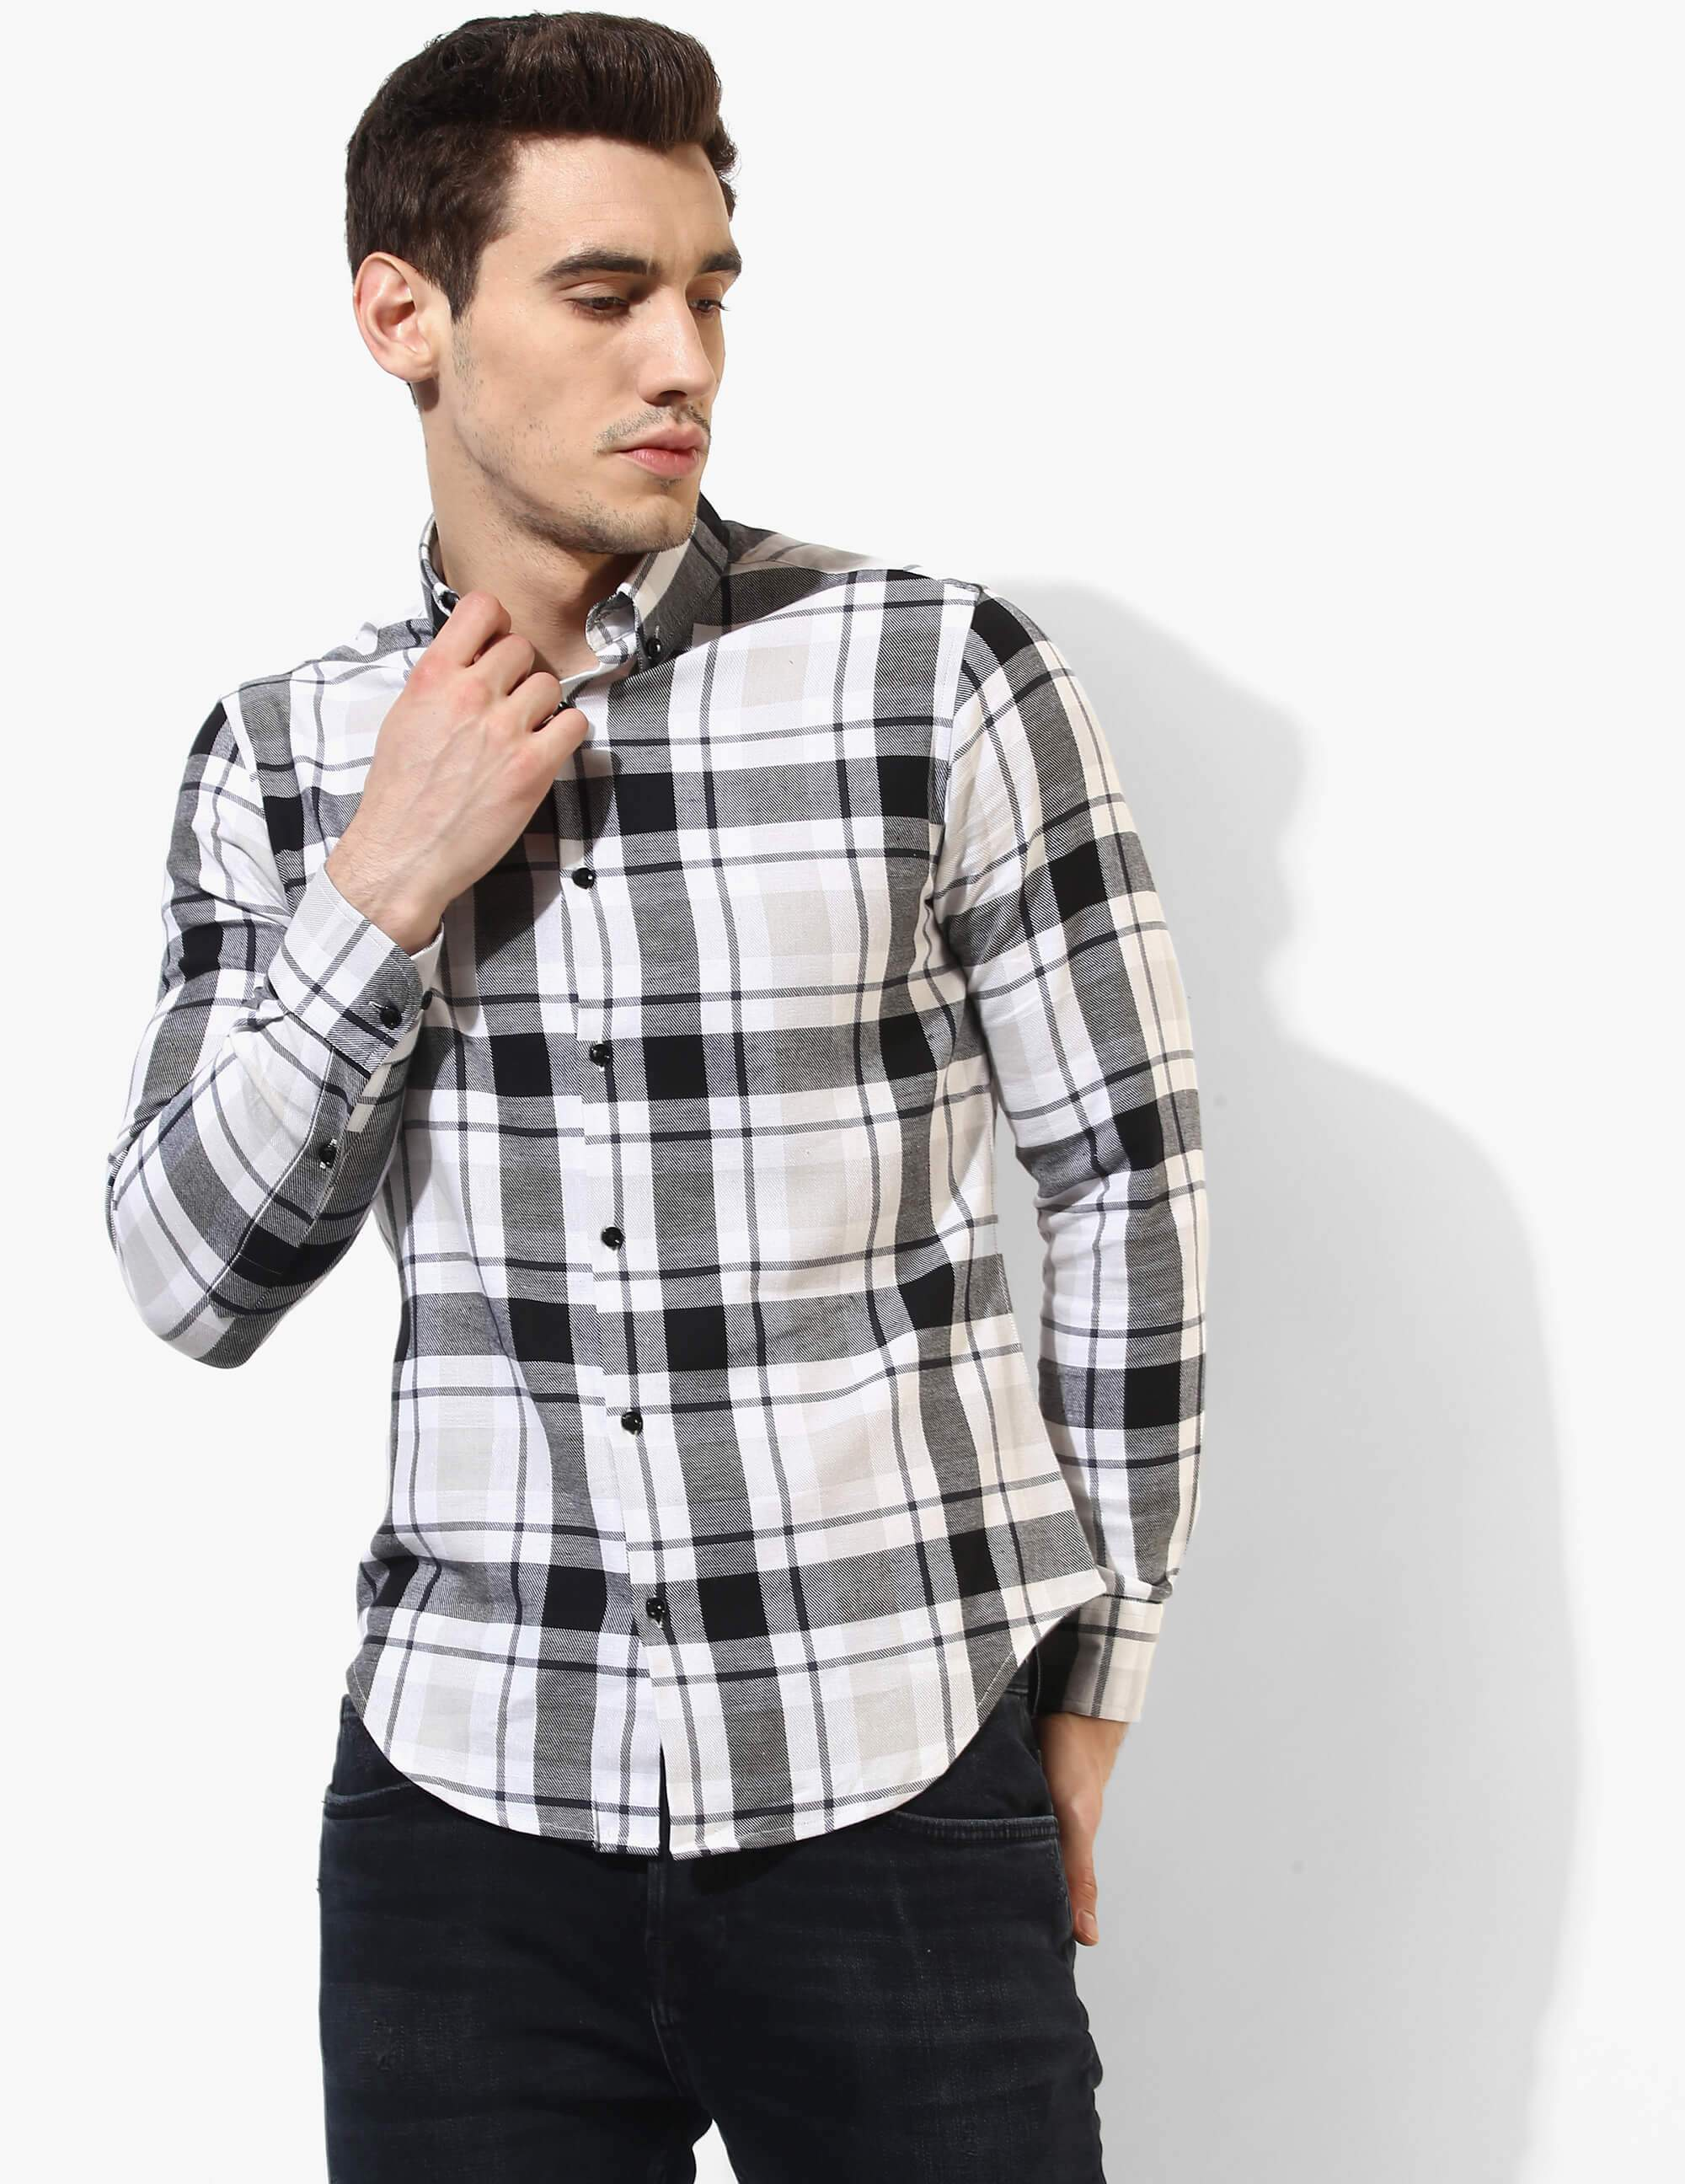 Immaculate Black & White Flannel Shirt